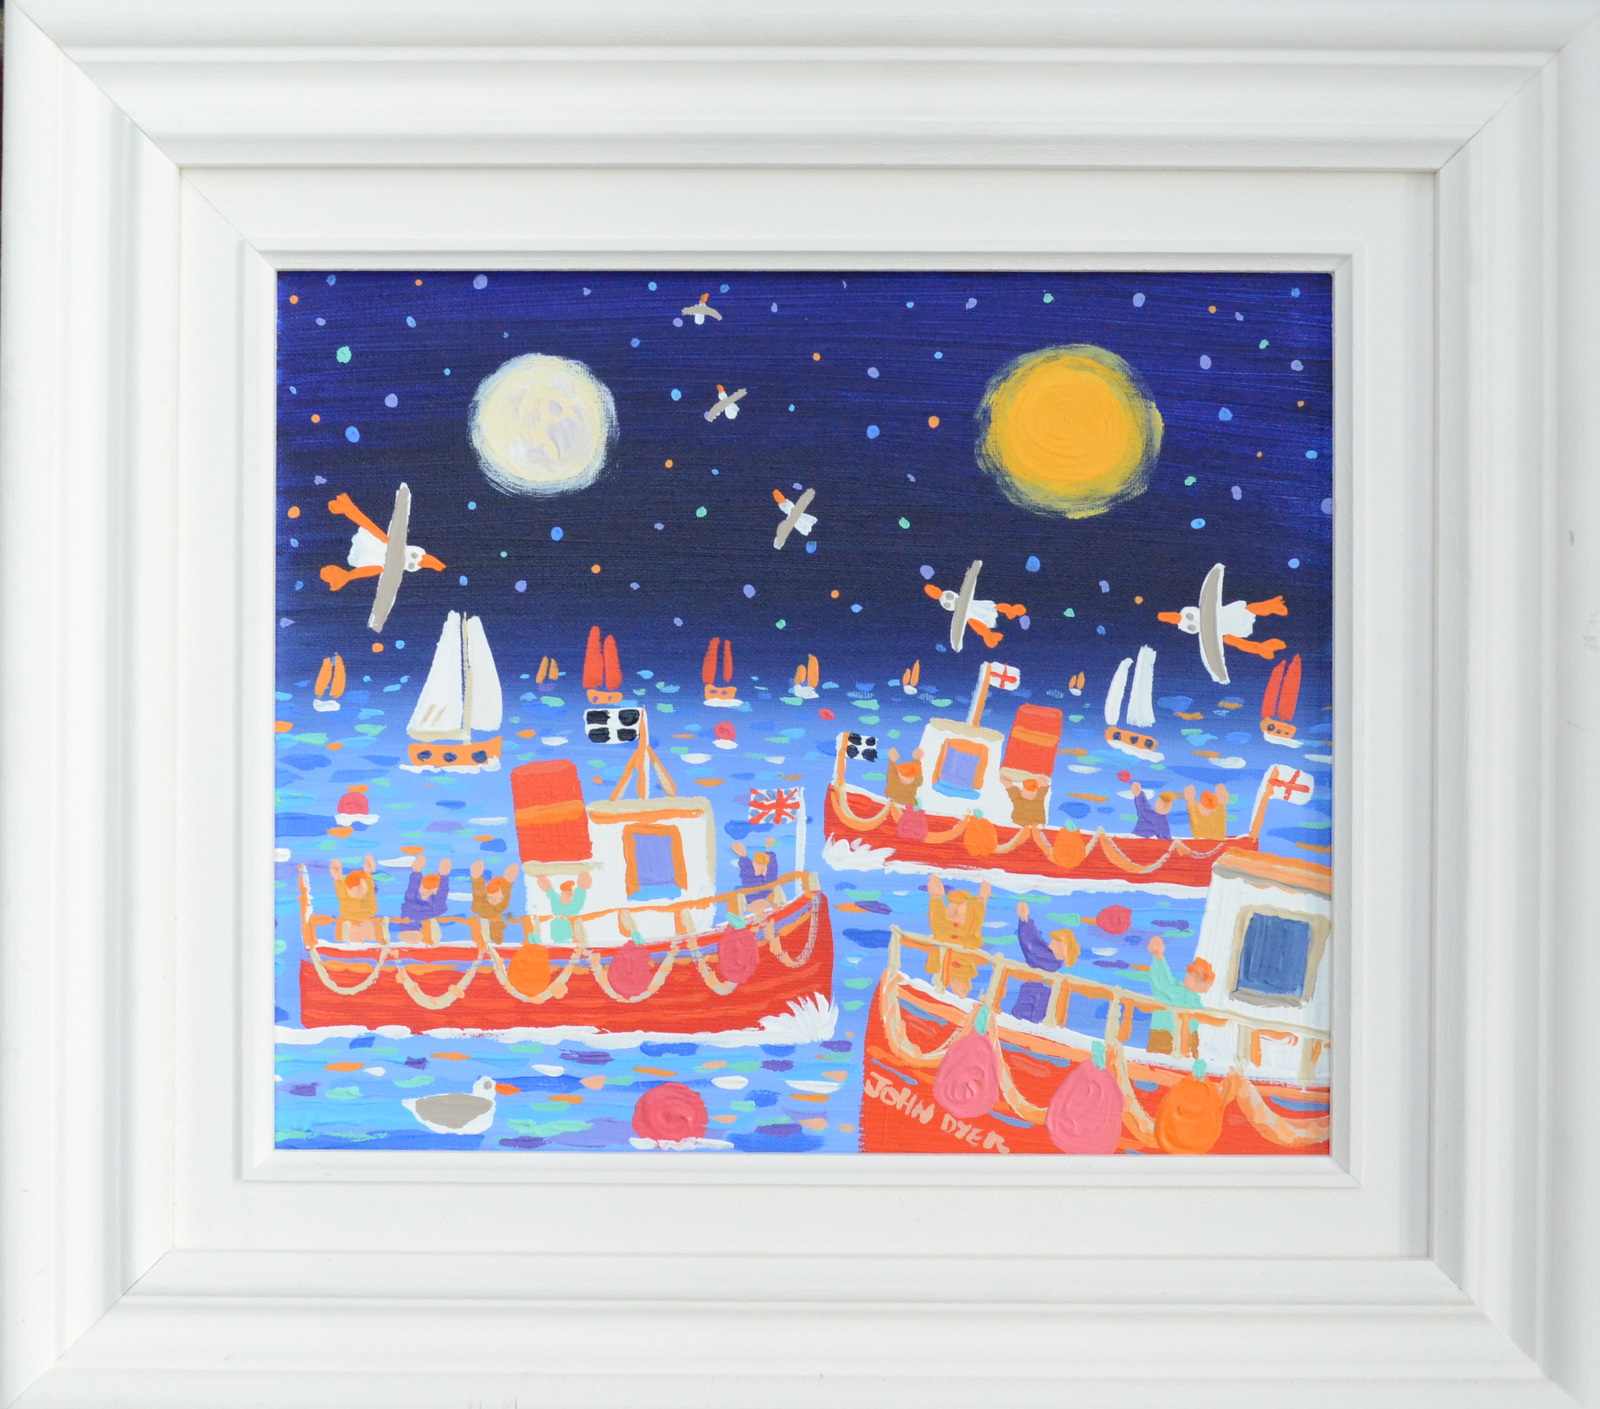 Lot 21 - JOHN DYER Drifting Together Oil on canvas Signed Titled on the back 26 x 31cm